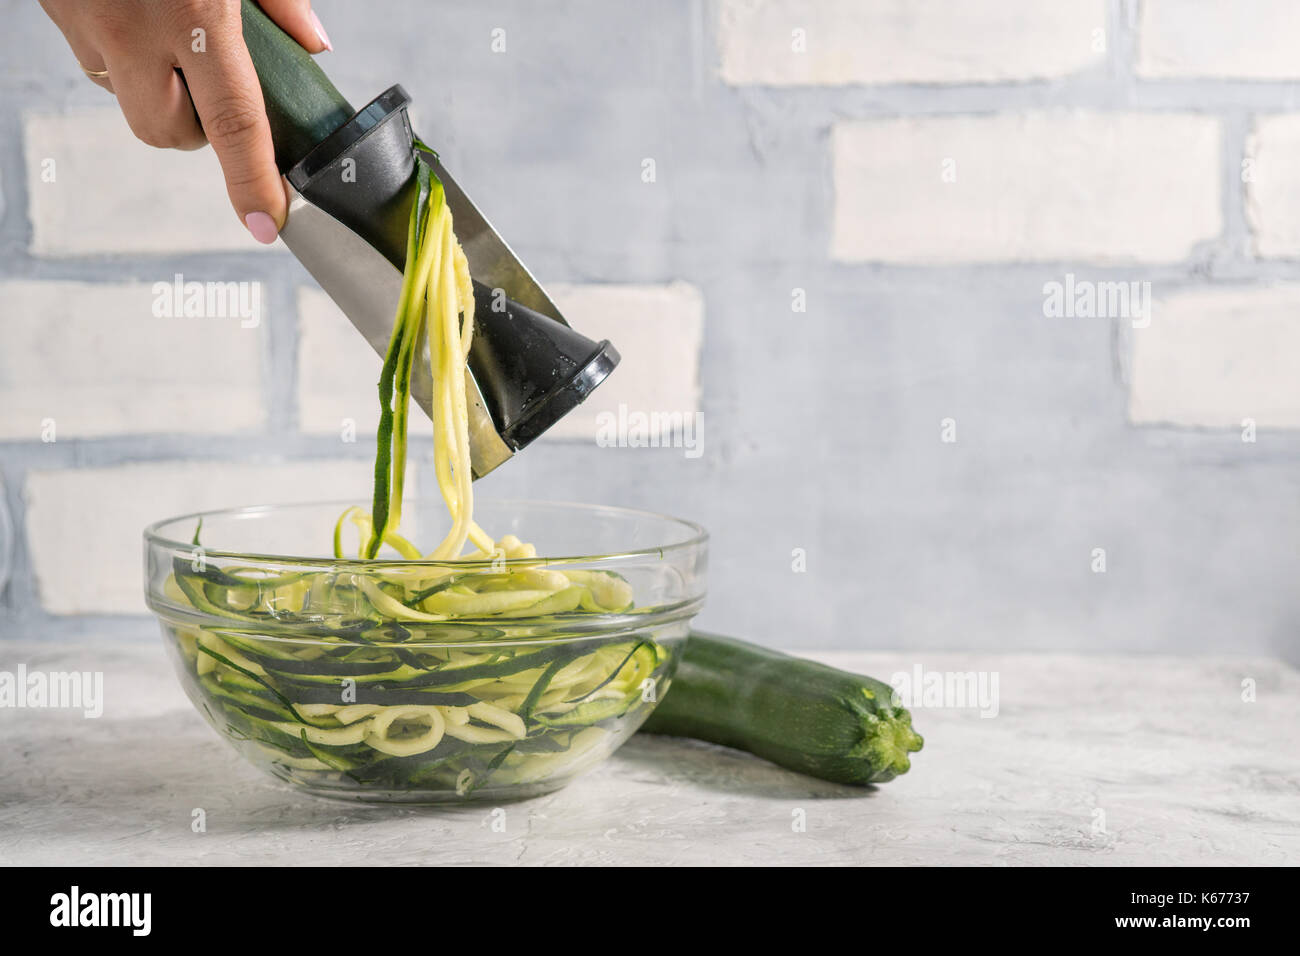 Making zucchini noodles with spiralizer. Diet low carb food Stock Photo